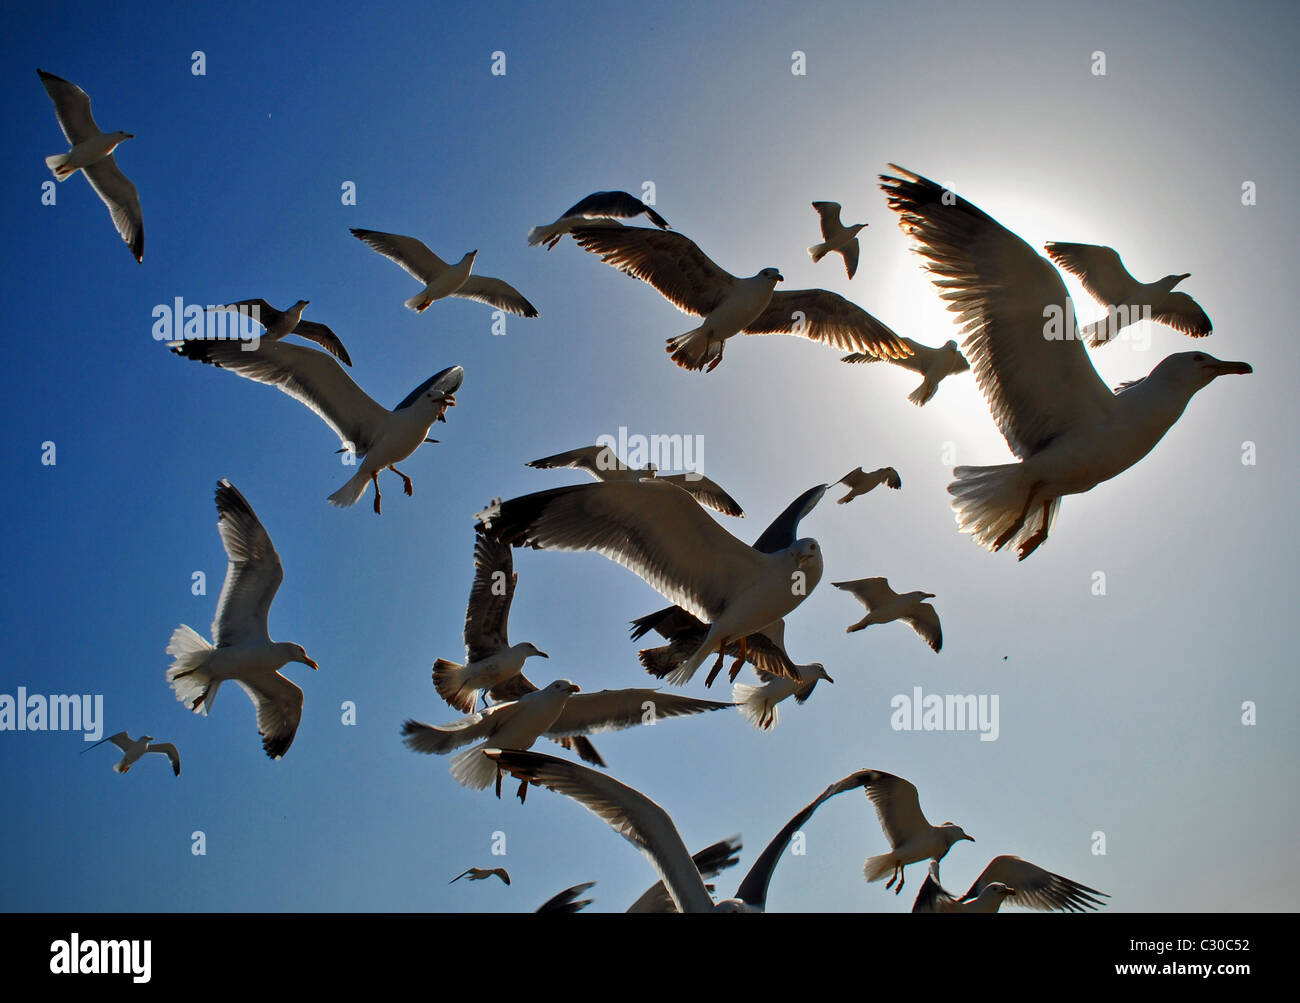 Flock of Seagulls in volo Immagini Stock